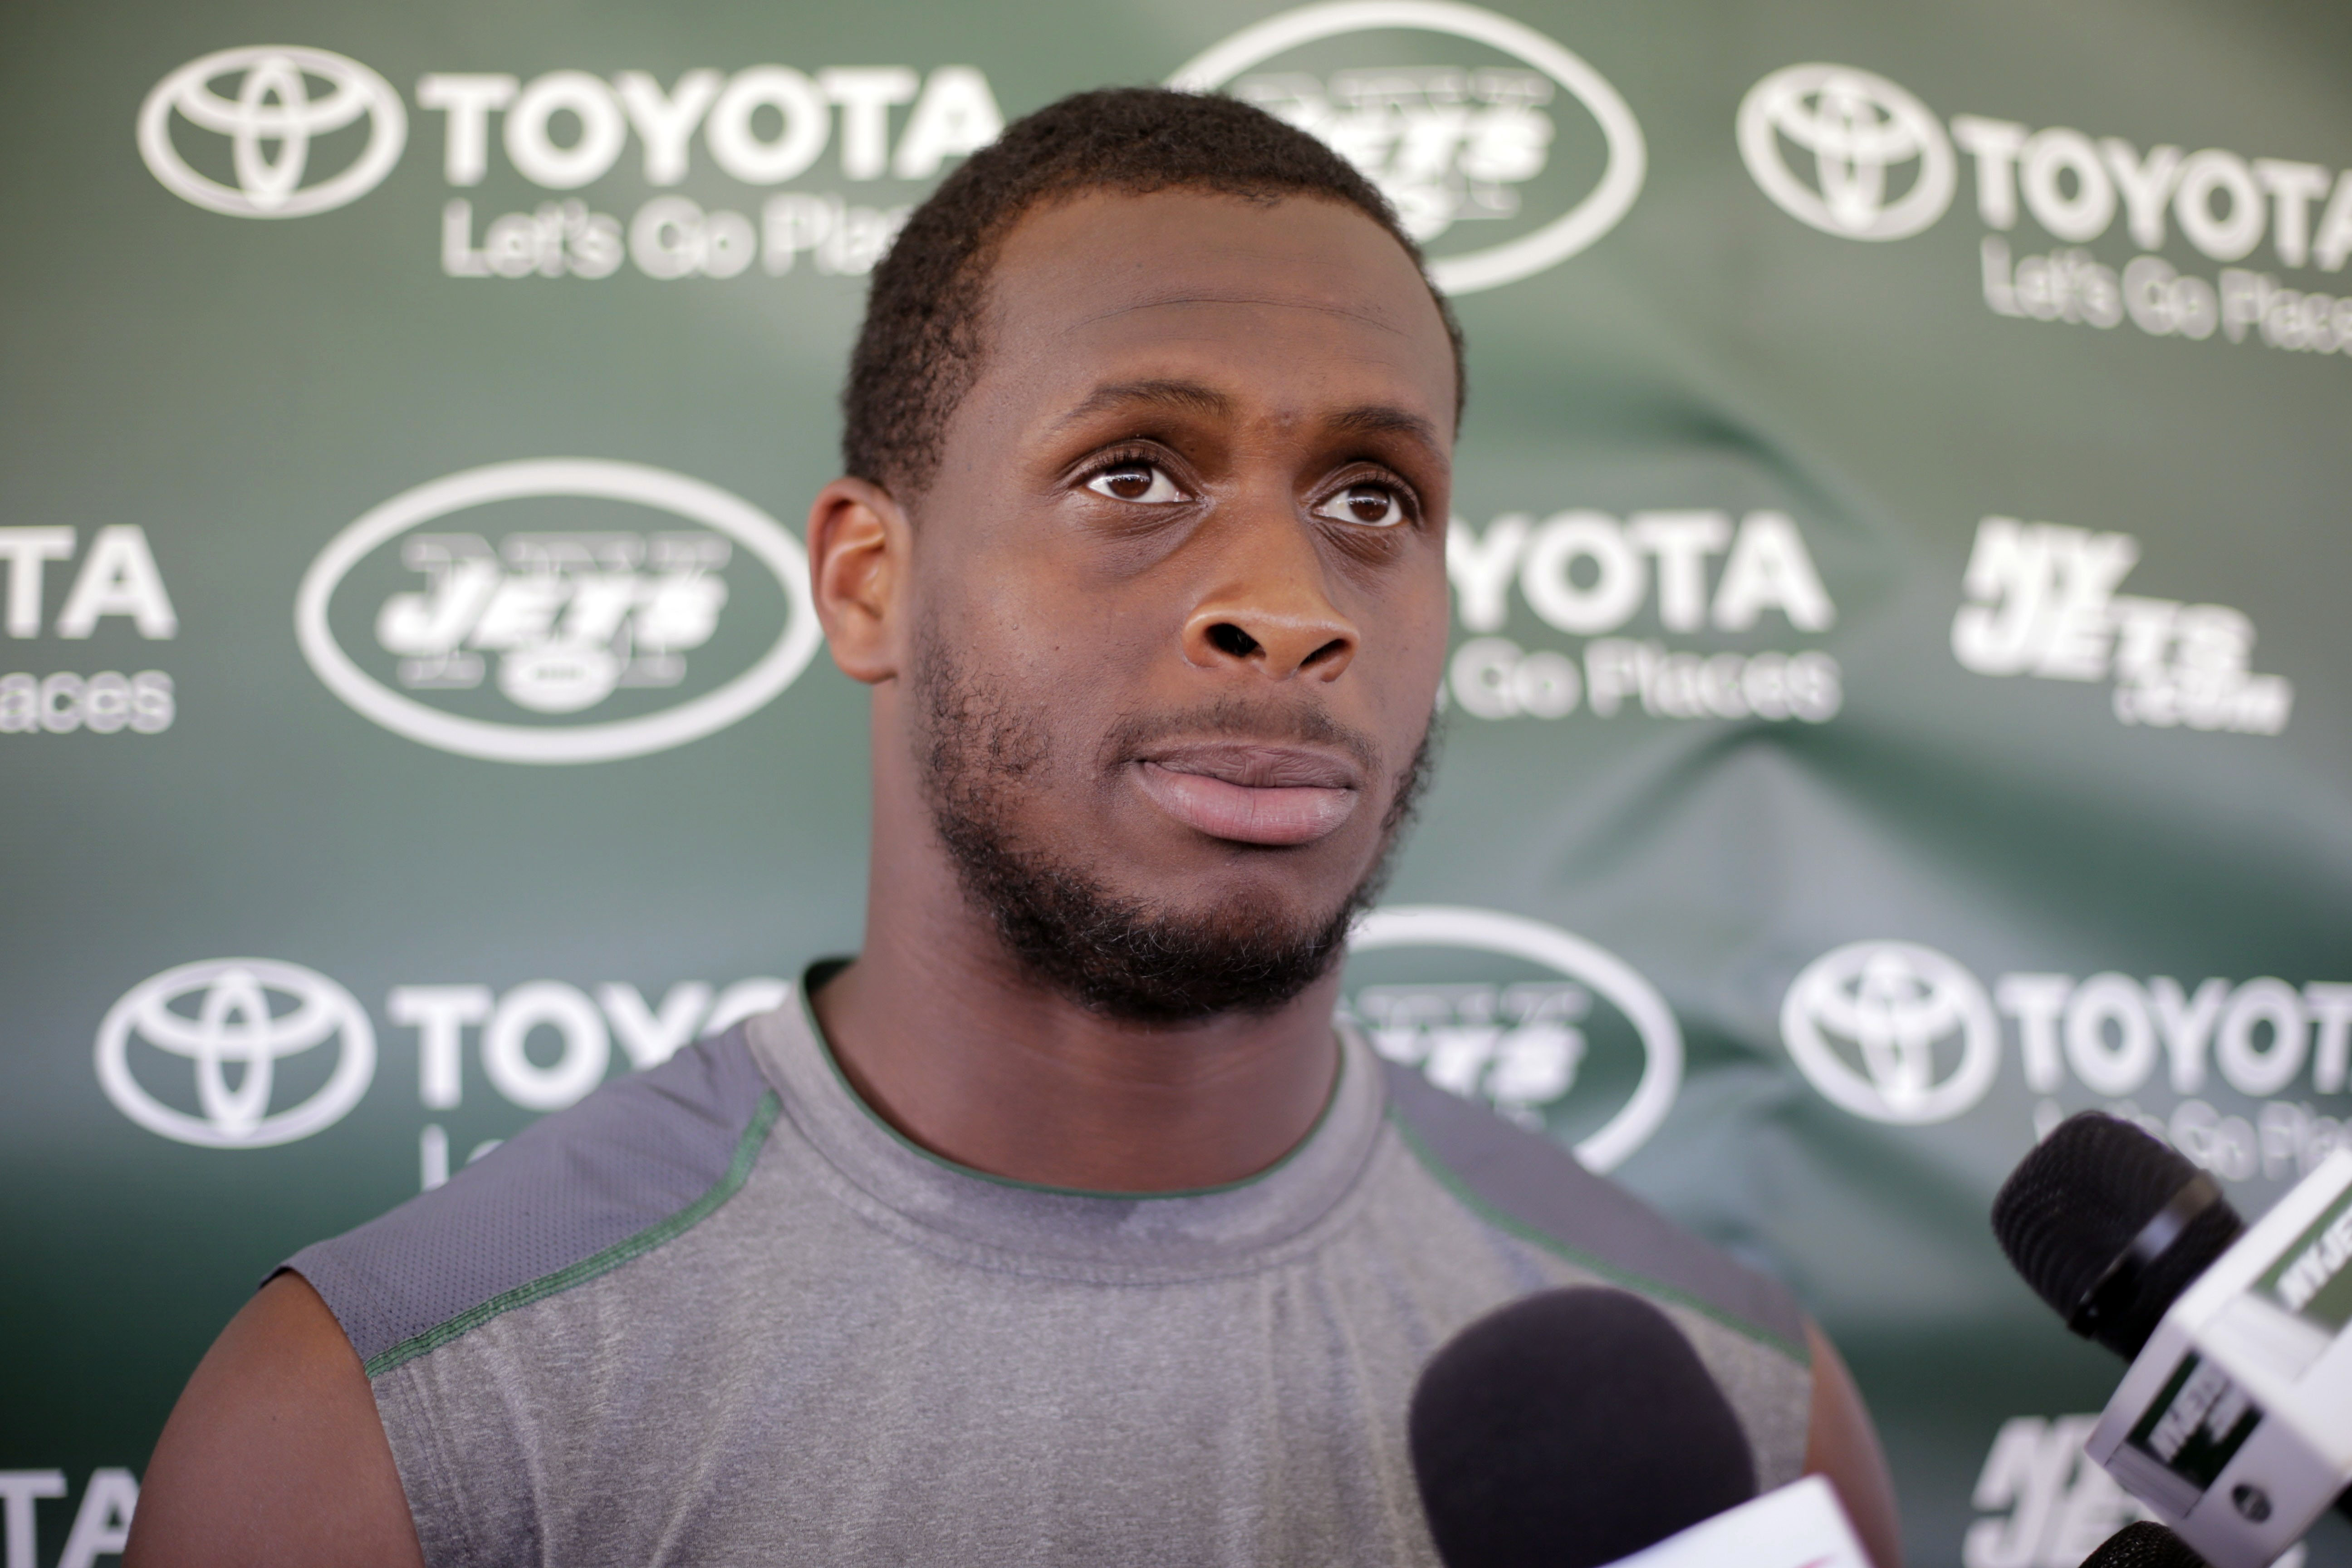 New York Jets quarterback Geno Smith responds to questions during a news conference after practice at NFL football  training camp, Tuesday, Aug. 4, 2015, in Florham Park, N.J. (AP Photo/Frank Franklin II)